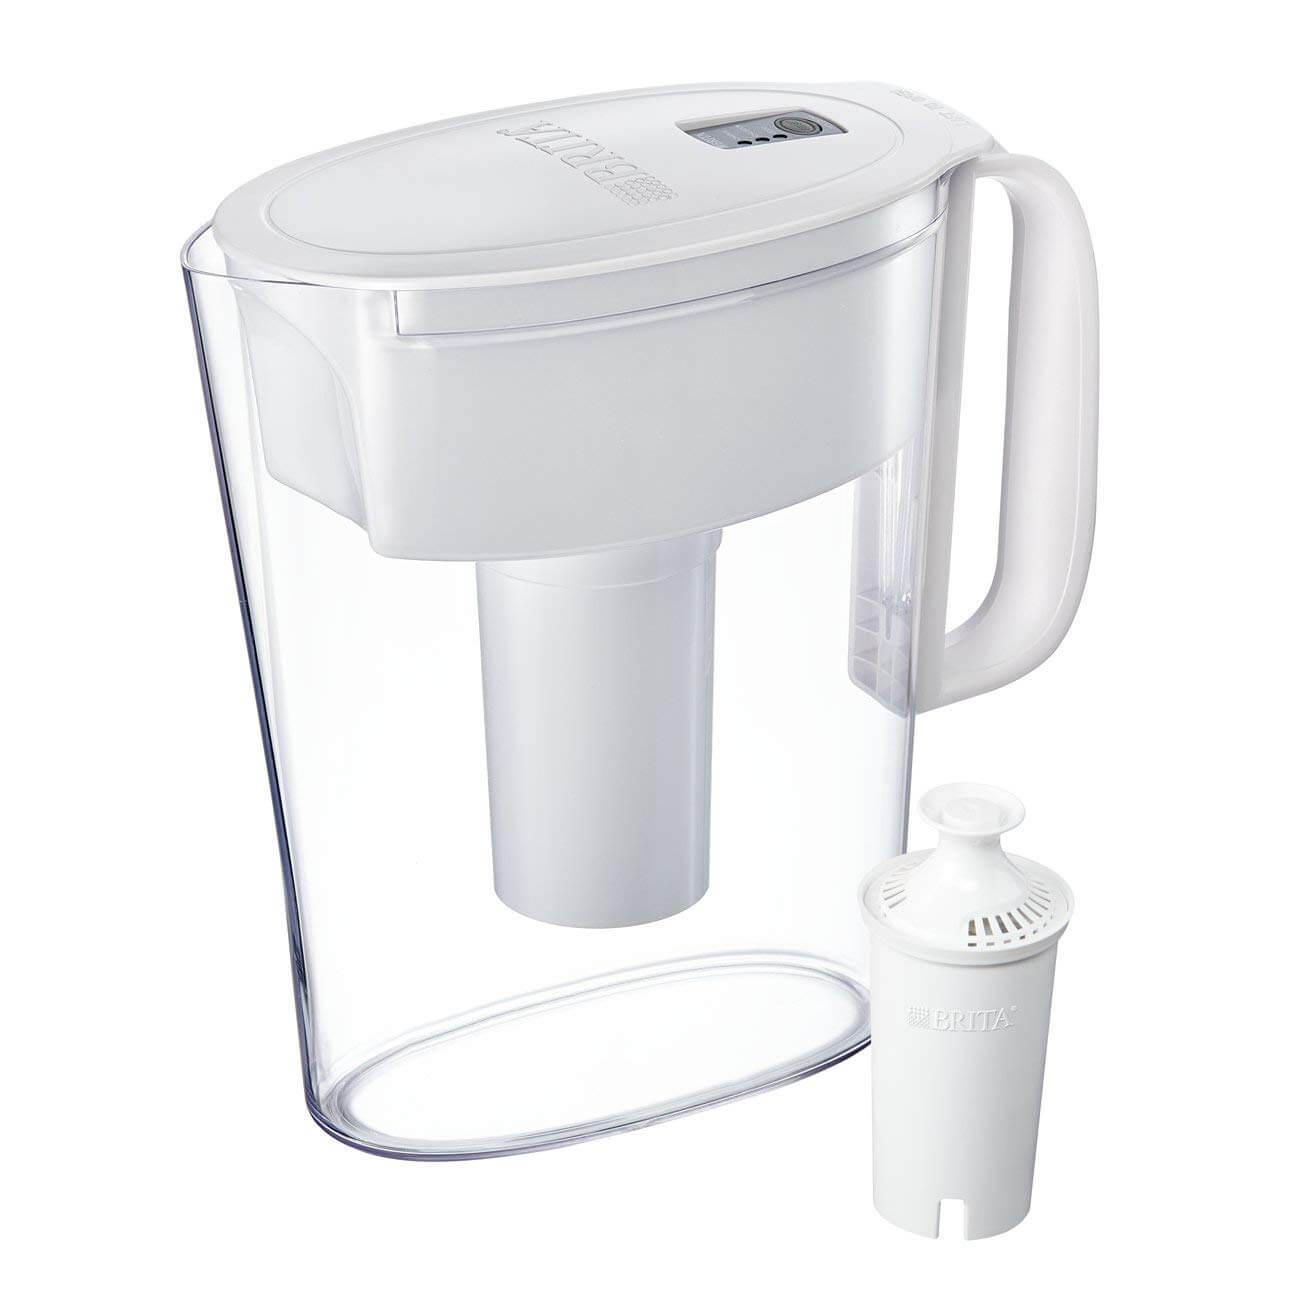 Brita Small 5 Cup Water Filter Pitcher with 1 Standard Filter